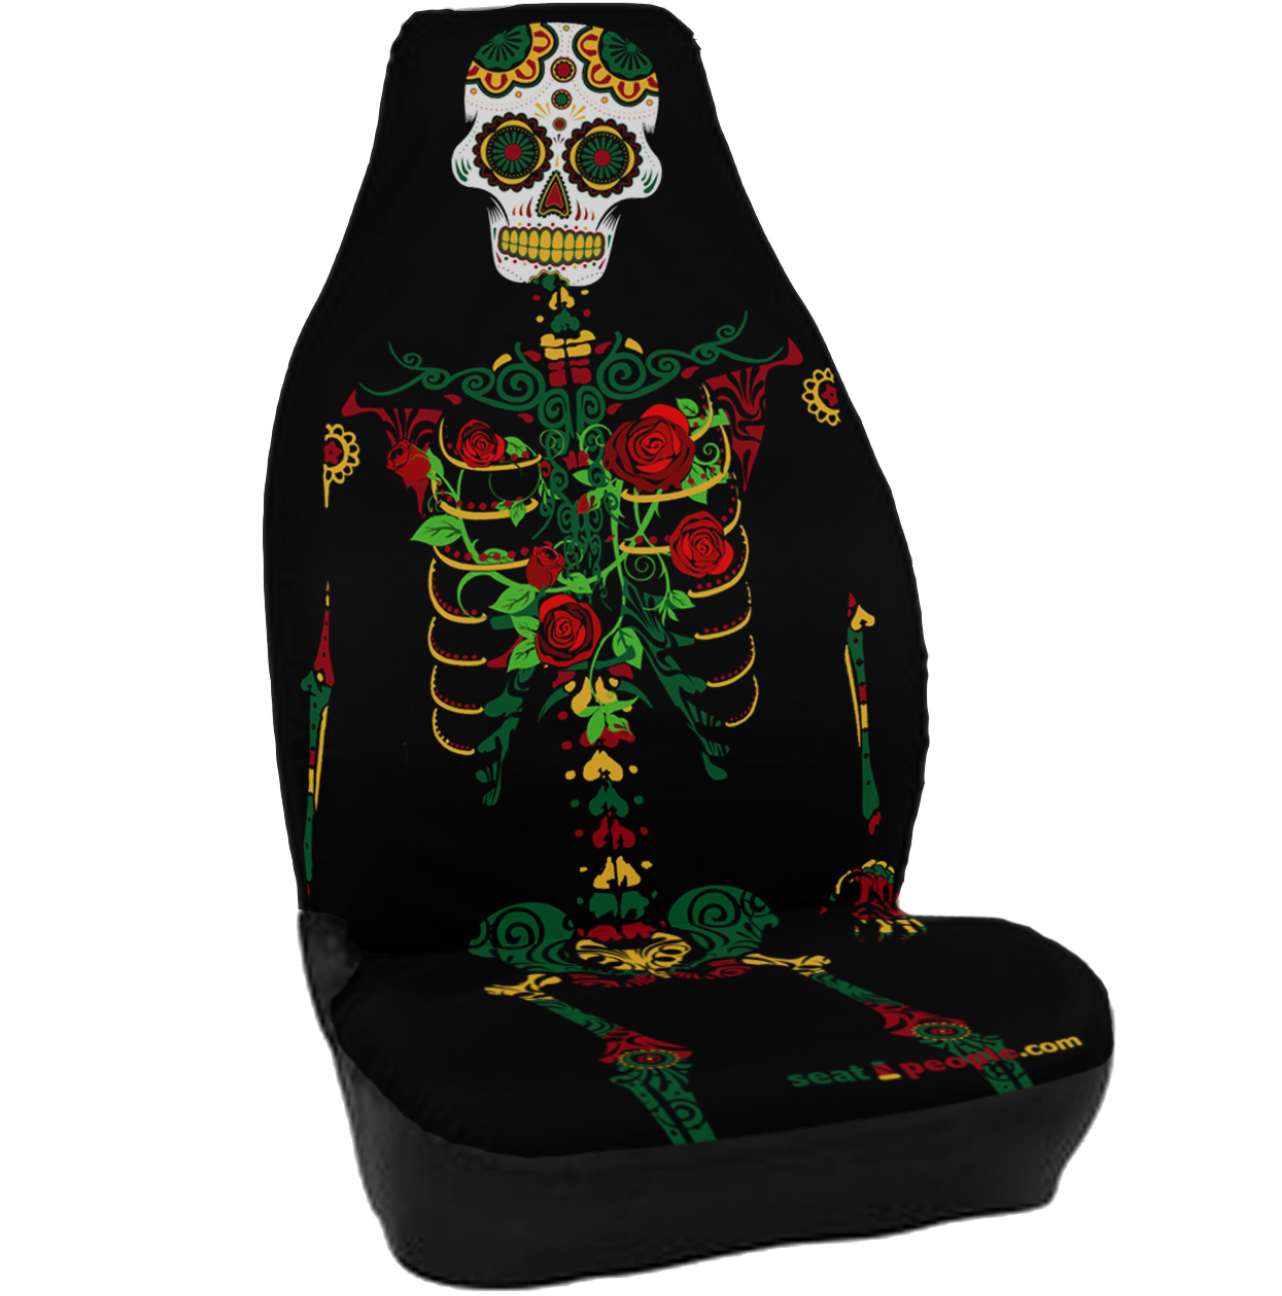 Day Of The Dead Seat Cover Jeep Covers Car Yellow Cat